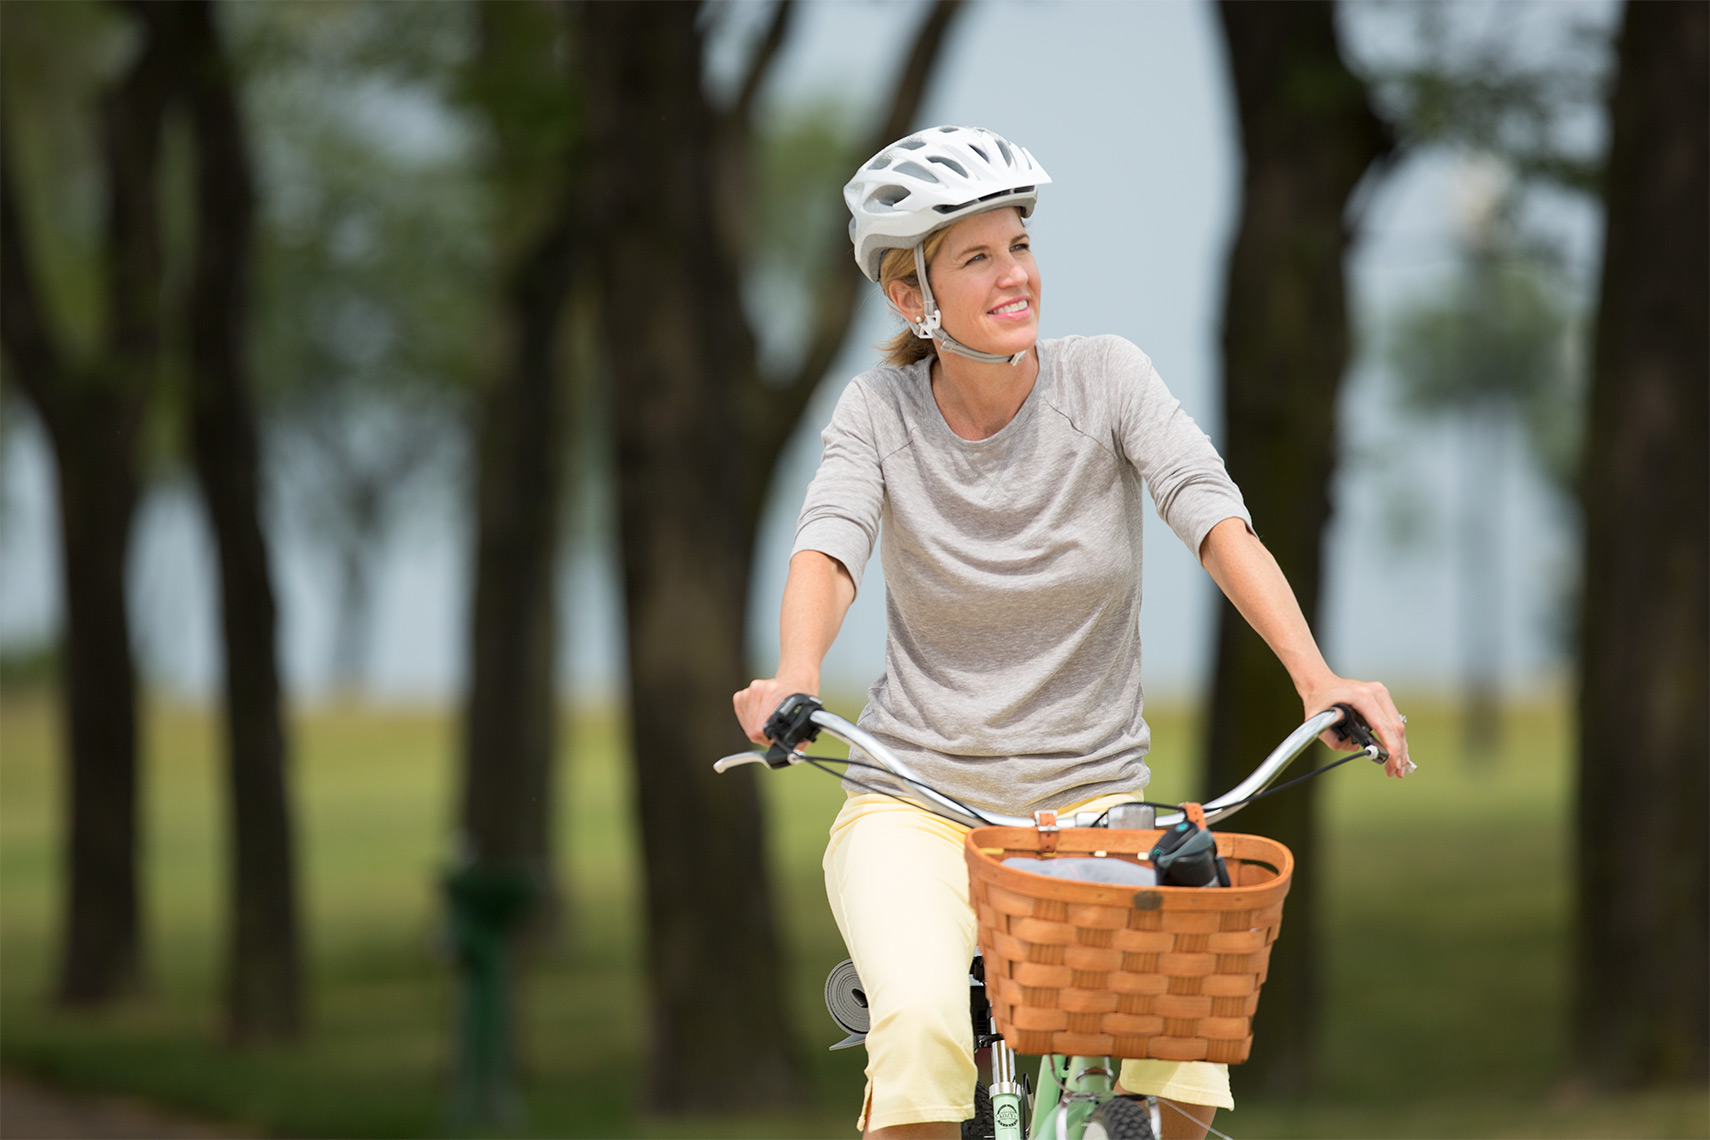 Woman-Bikeriding-160-1web.jpg